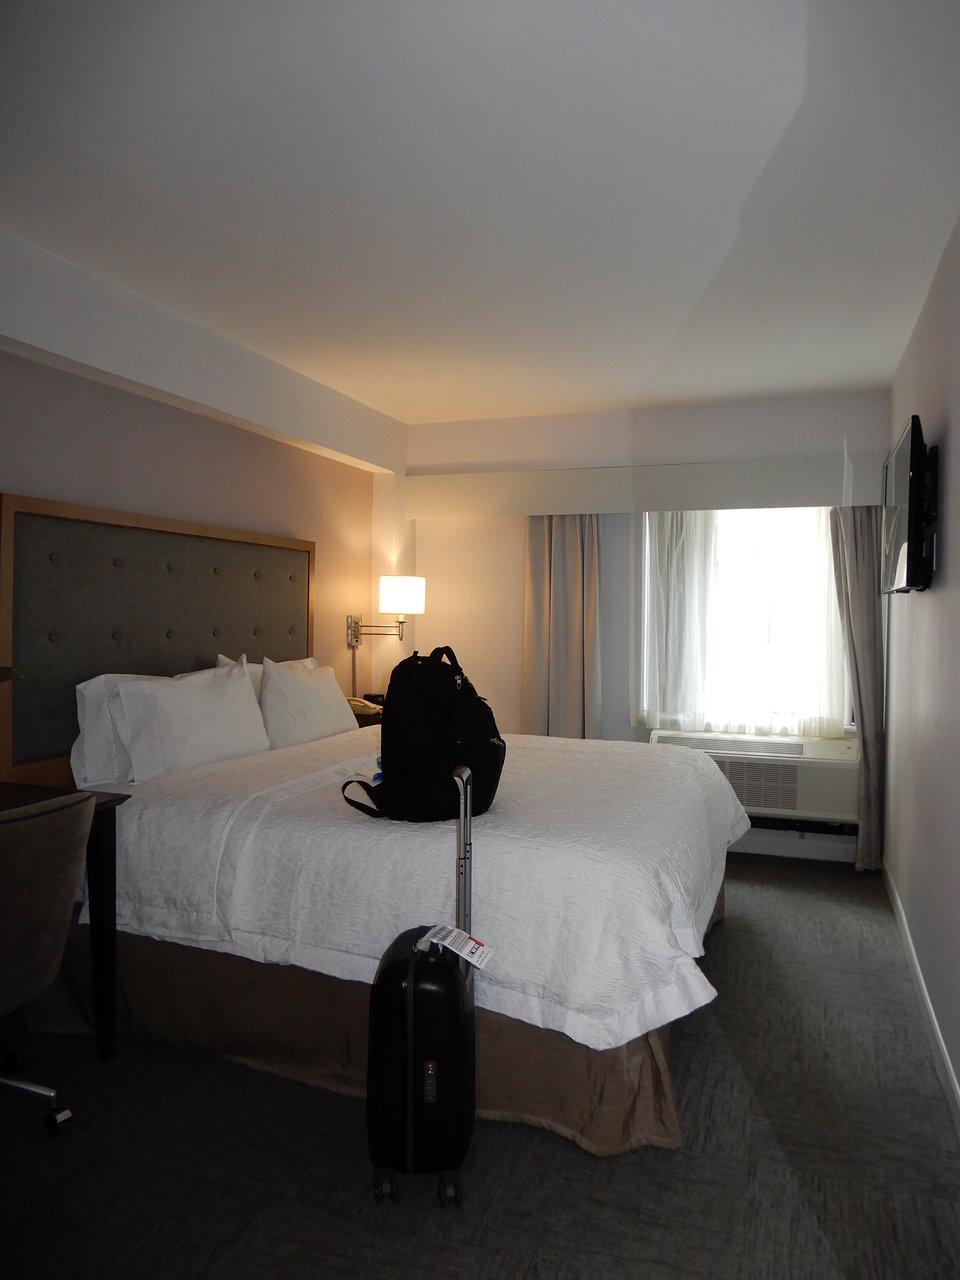 HAMPTON INN MANHATTAN TIMES SQUARE NORTH 149 190